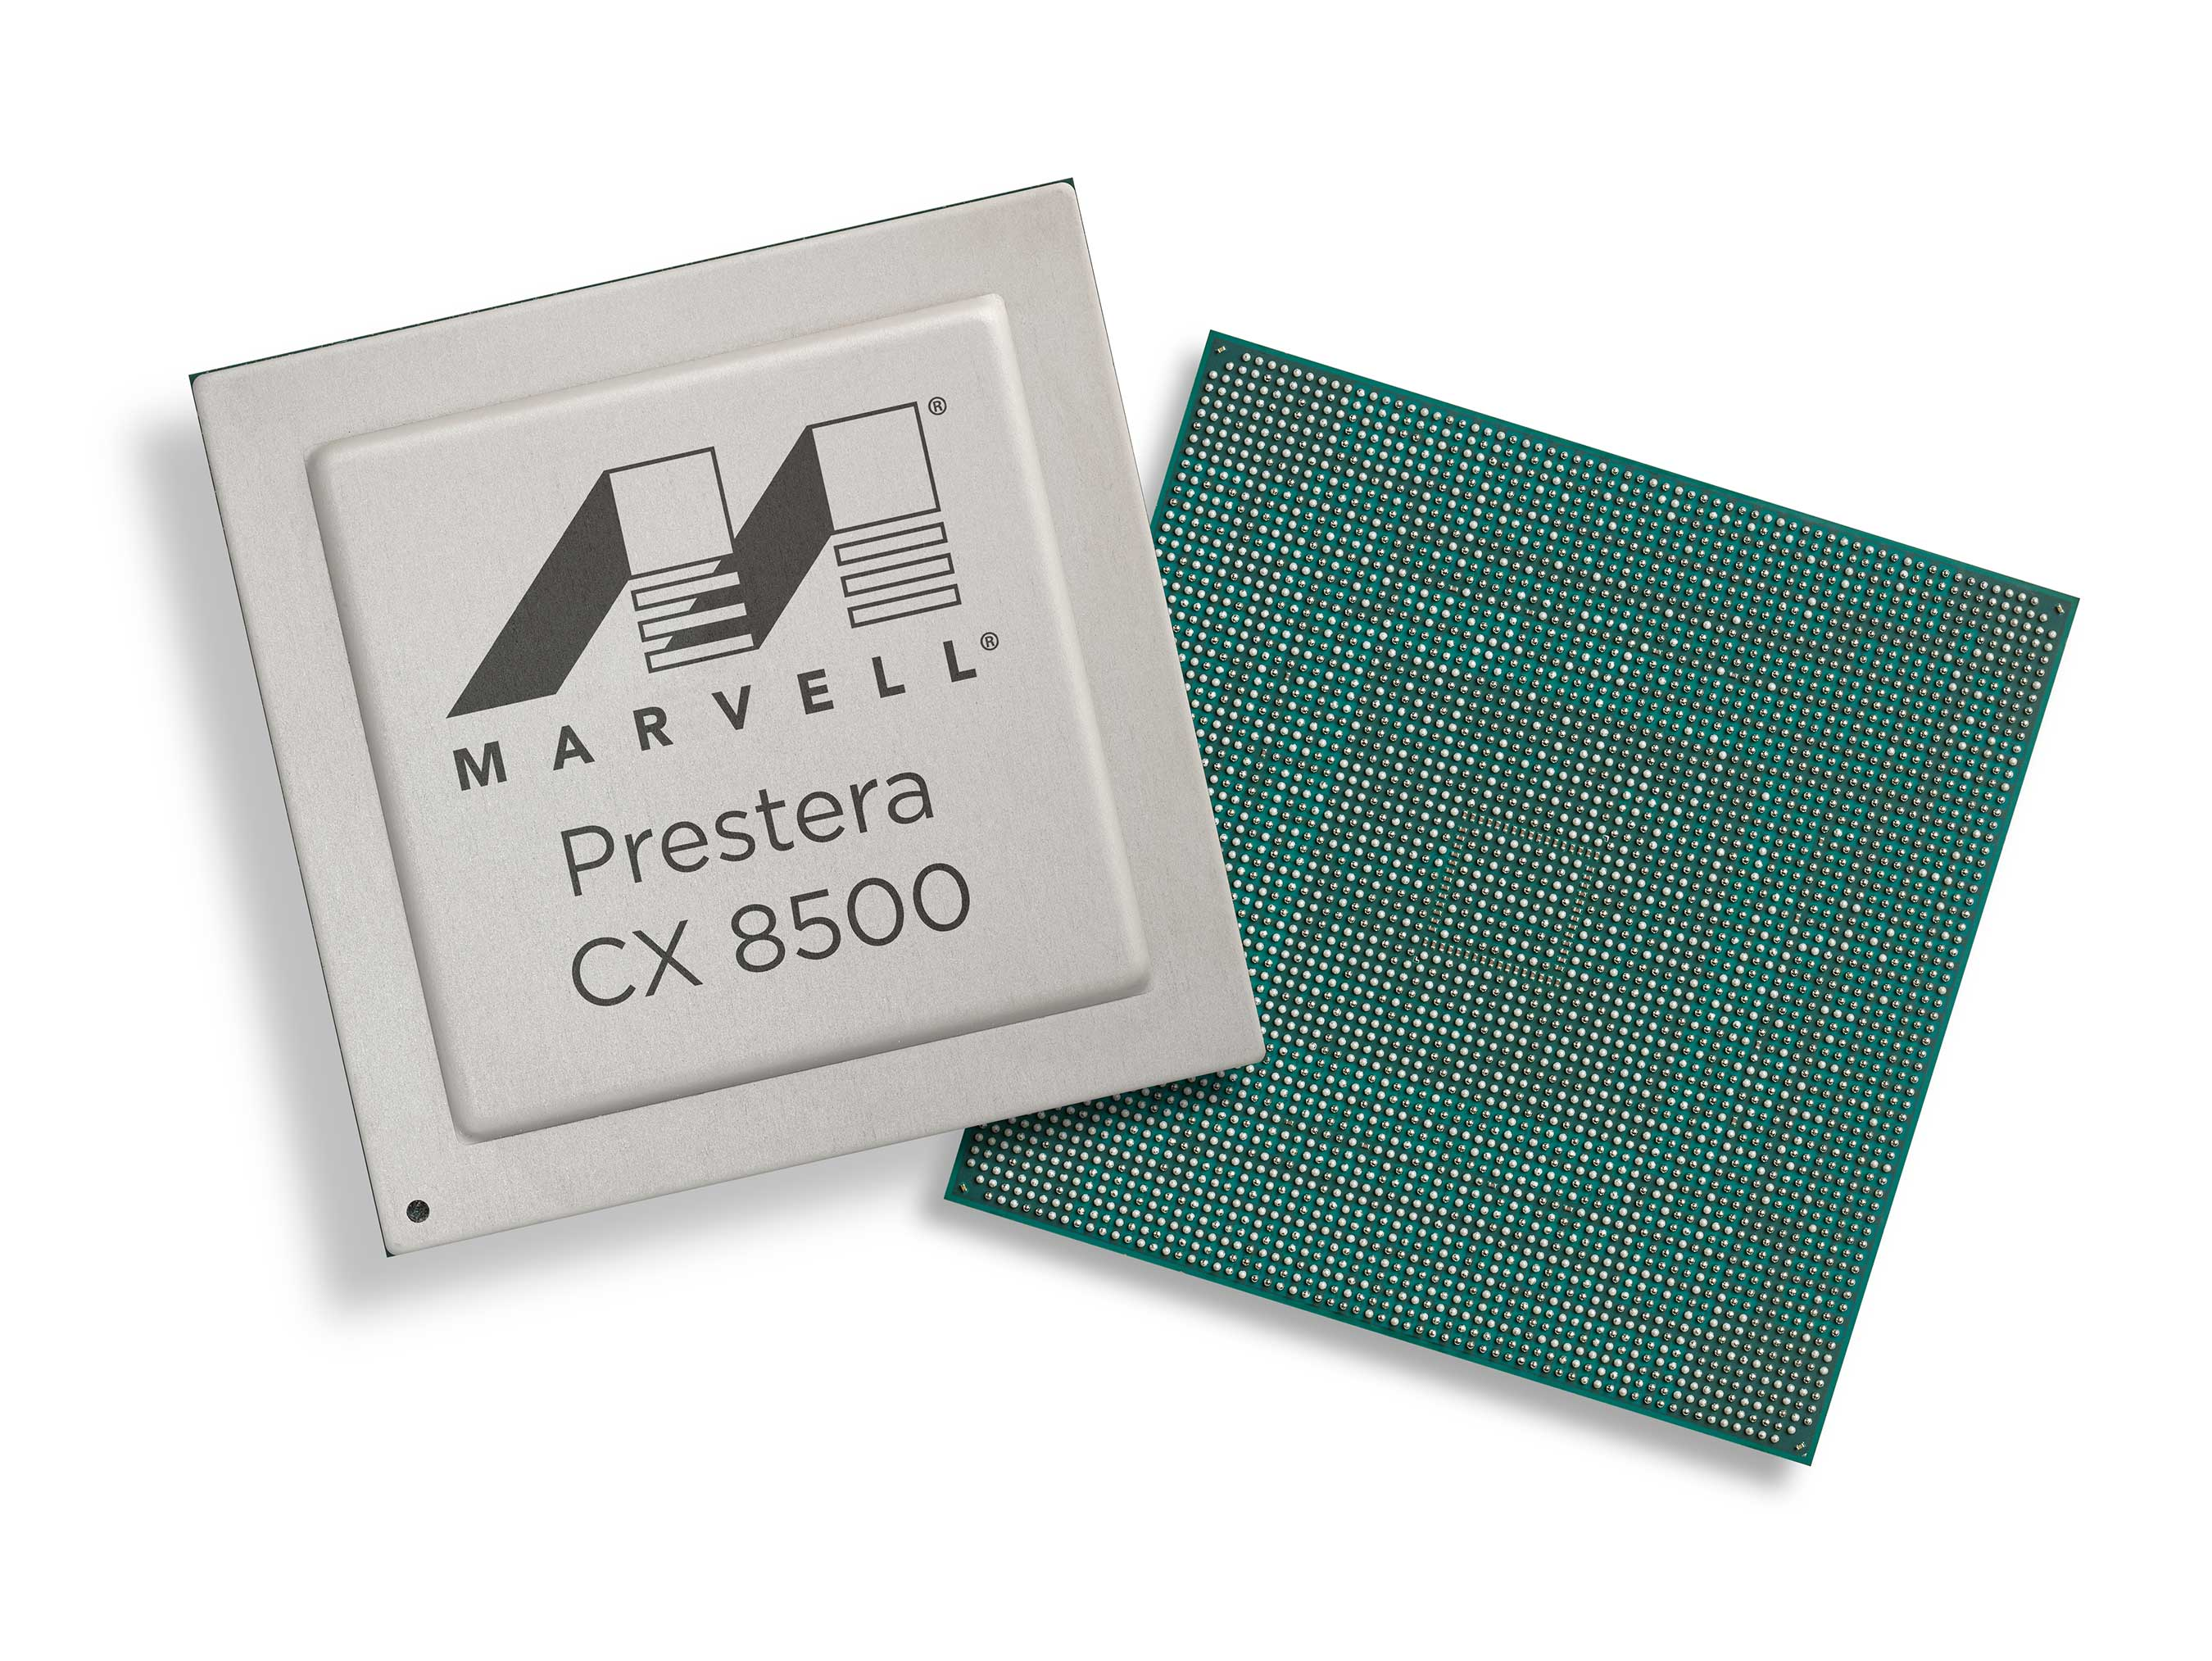 The Marvell Prestera CX 8500 portfolio represents a revolutionary approach to data center architectures with features offering unprecedented workflow visibility, analytics and network simplification to support QoS, traffic management and scalability.